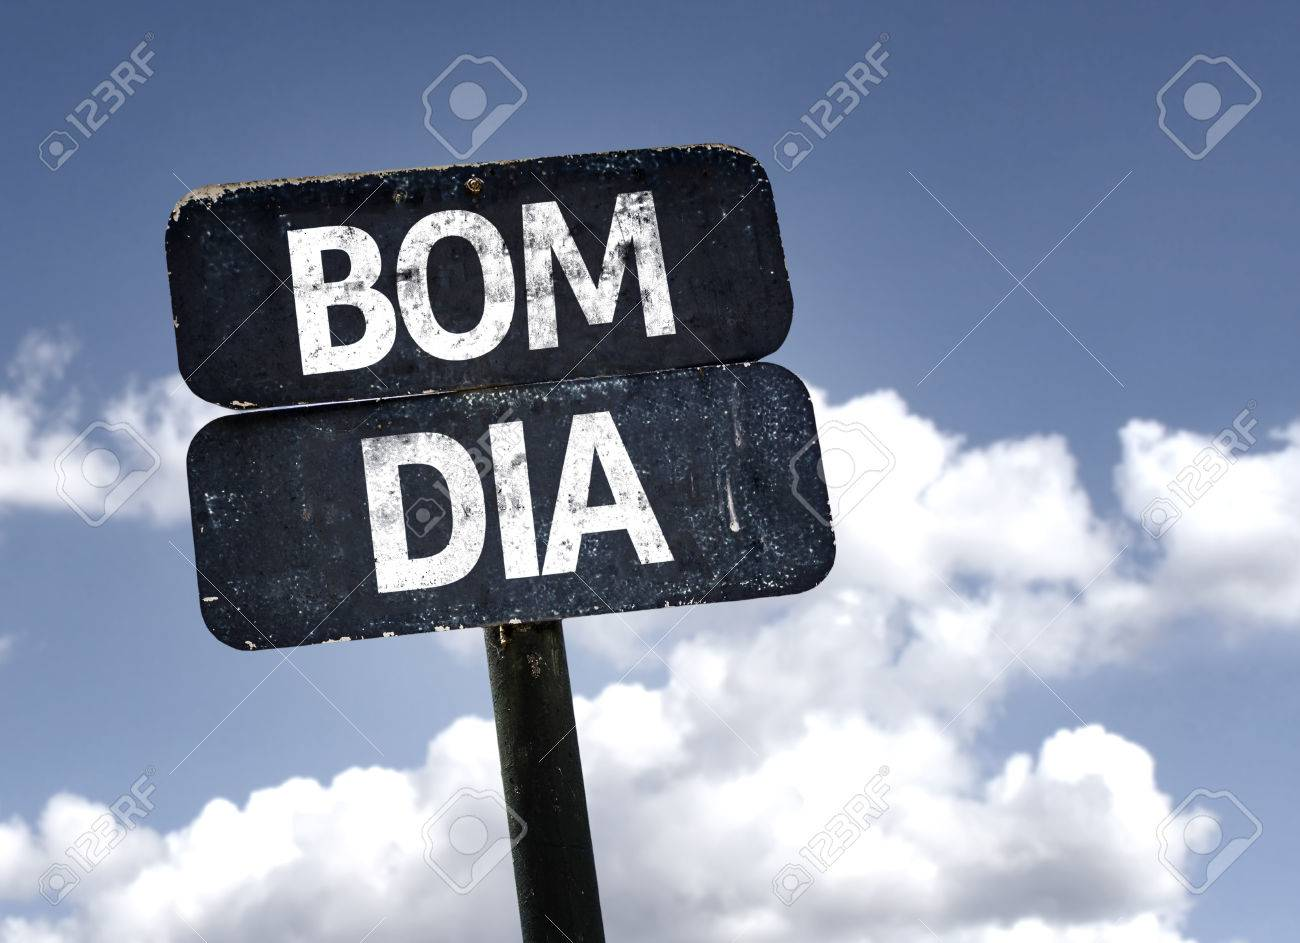 Good Morning In Portuguese On Sign With Clouds And Sky Background